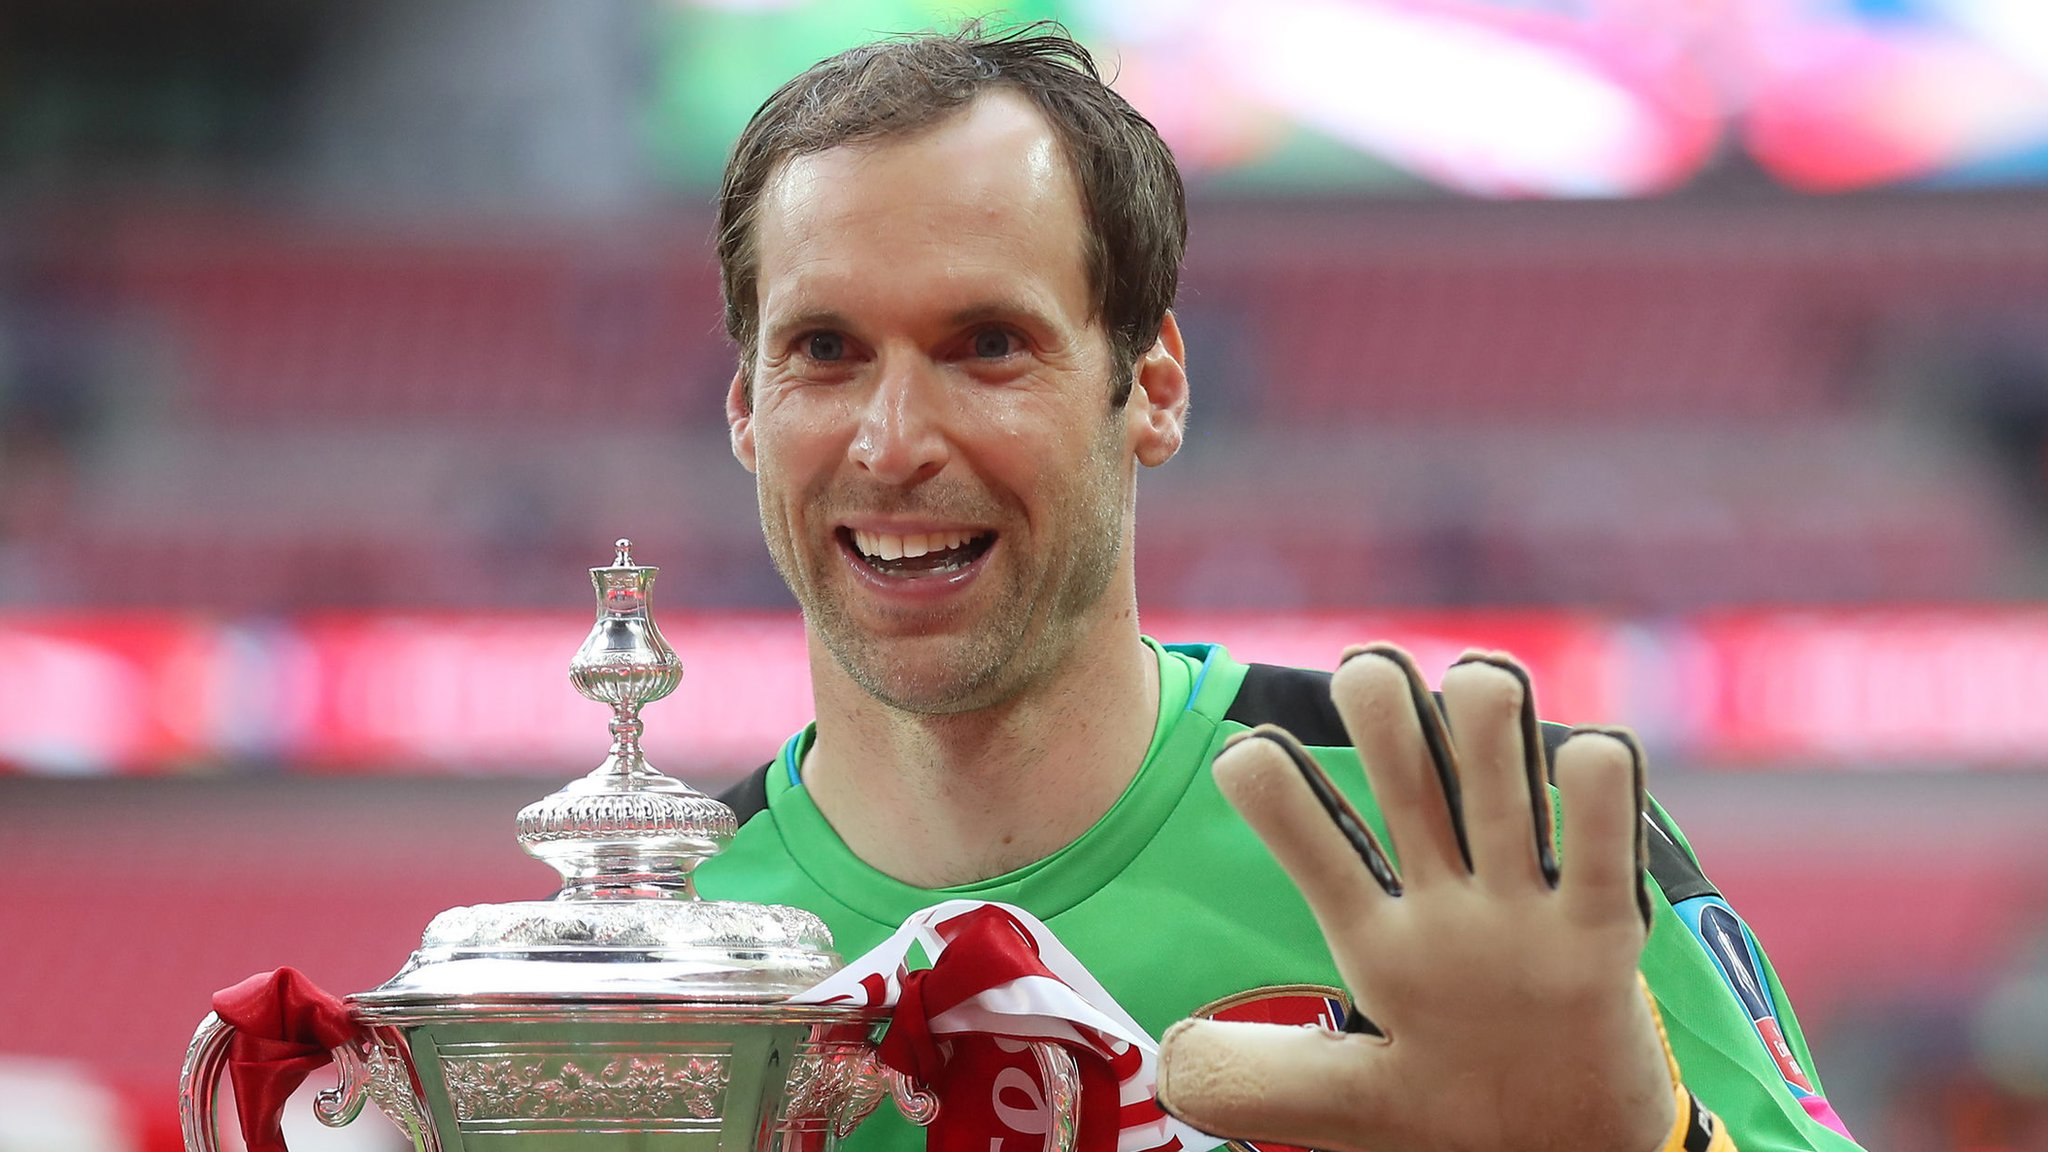 Arsenal keeper Cech to retire at end of season after 20-year career